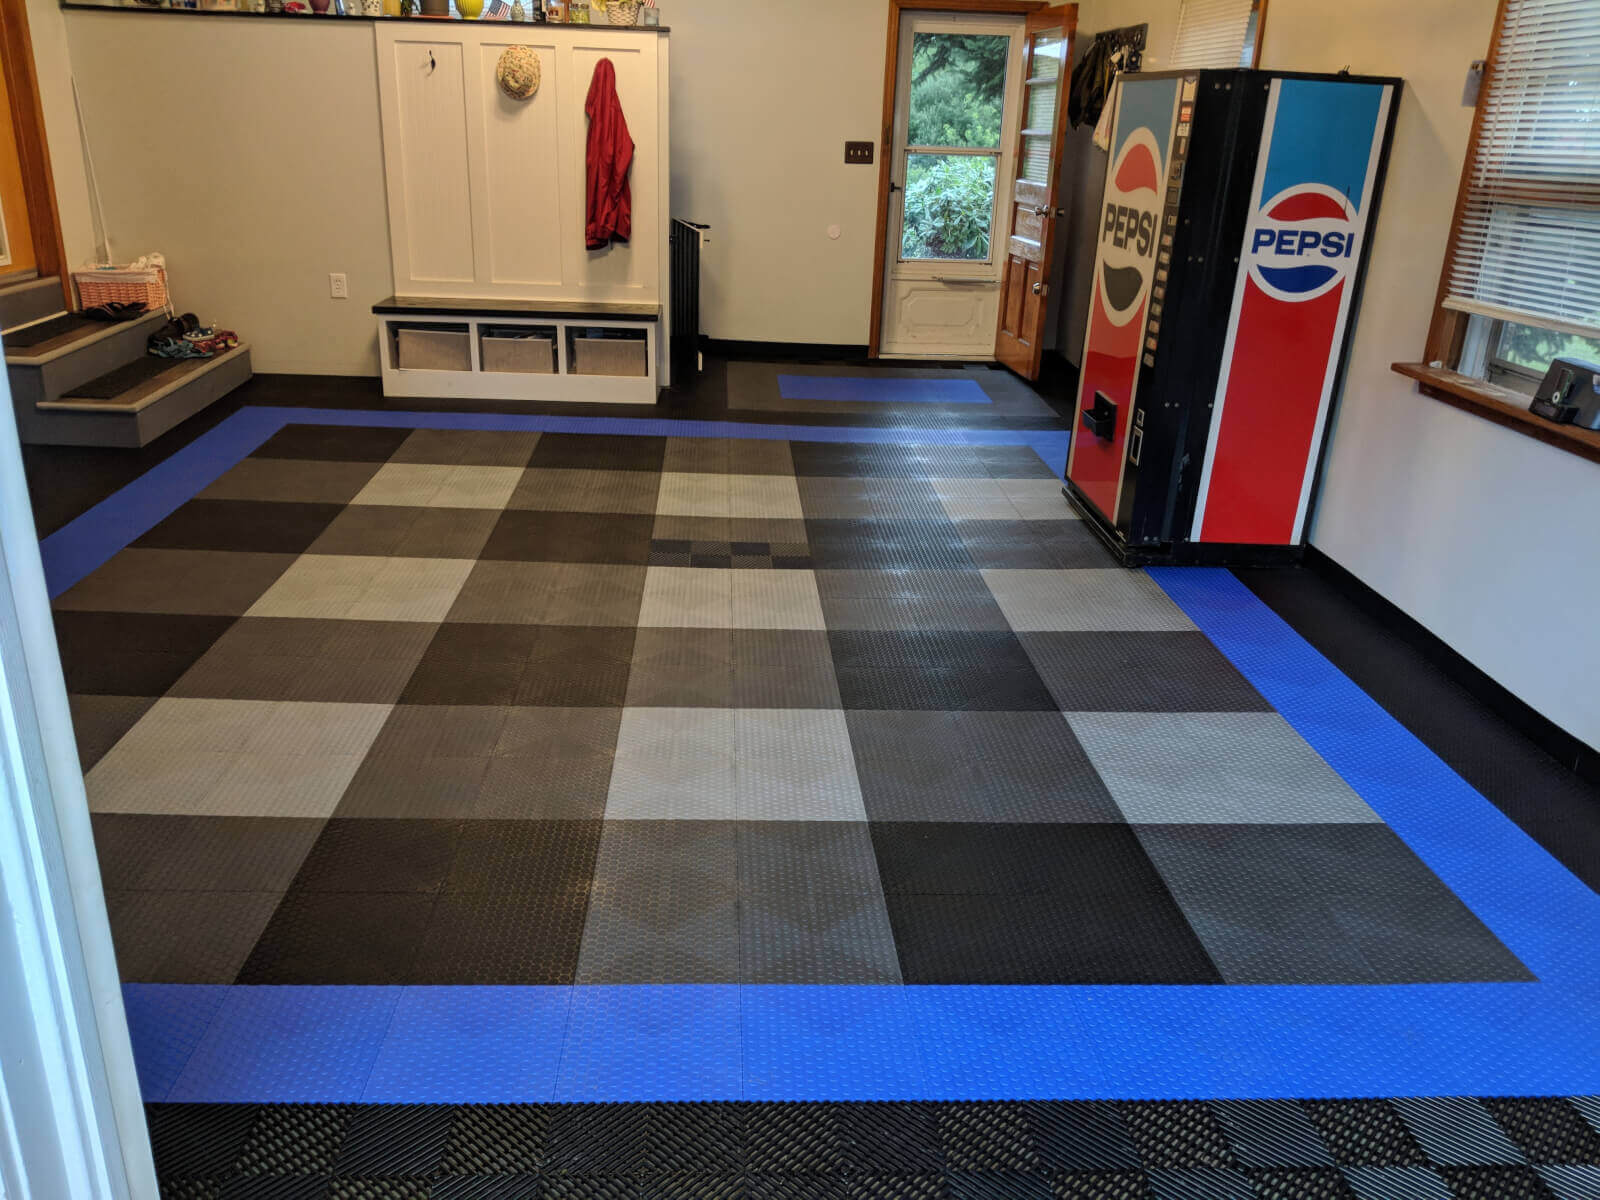 Garage Floor Tiles That Drain Truelock Hd Extreme Coin Garage Floor Tile